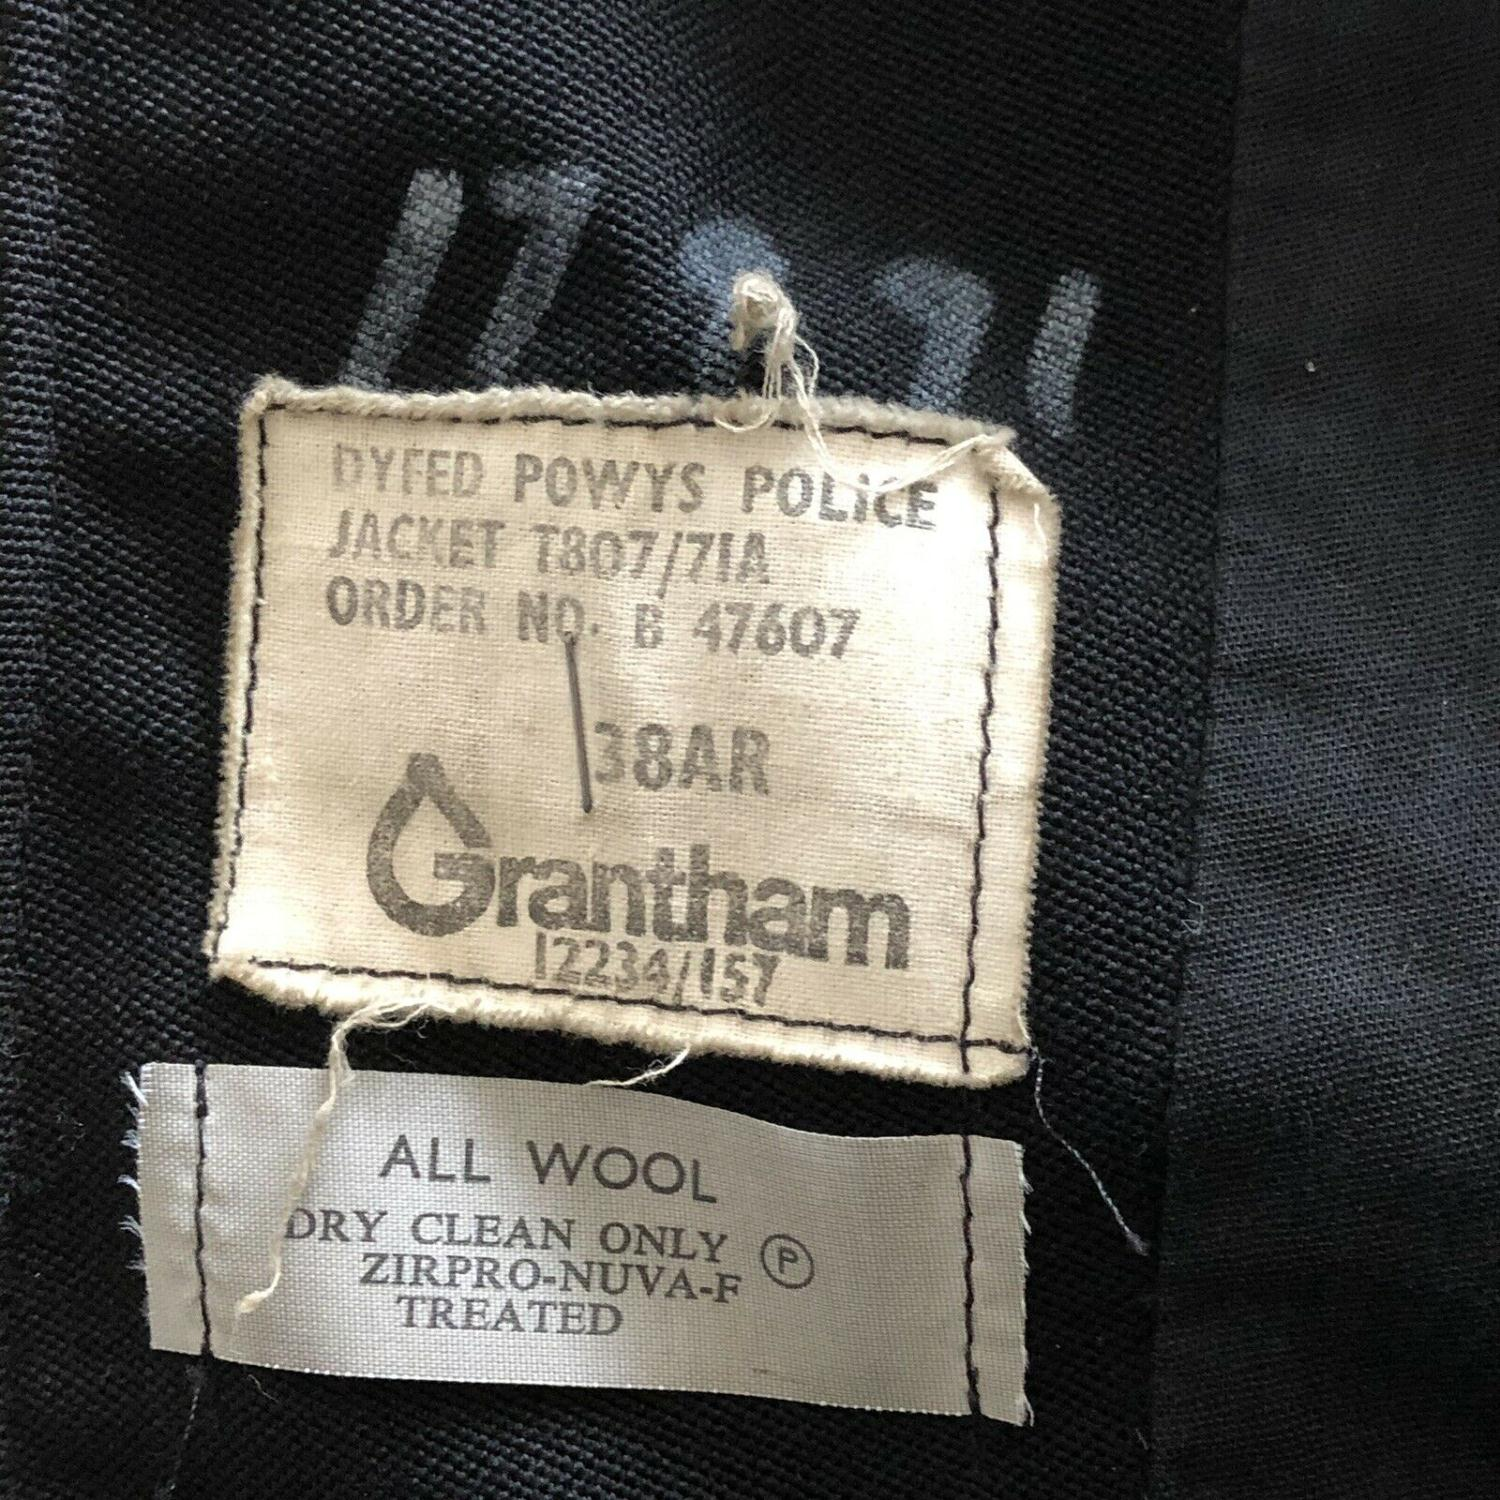 Lot 58 - A Vintage Black Police Uniform Jacket with Dyfed Powys Buttons - All Wool label